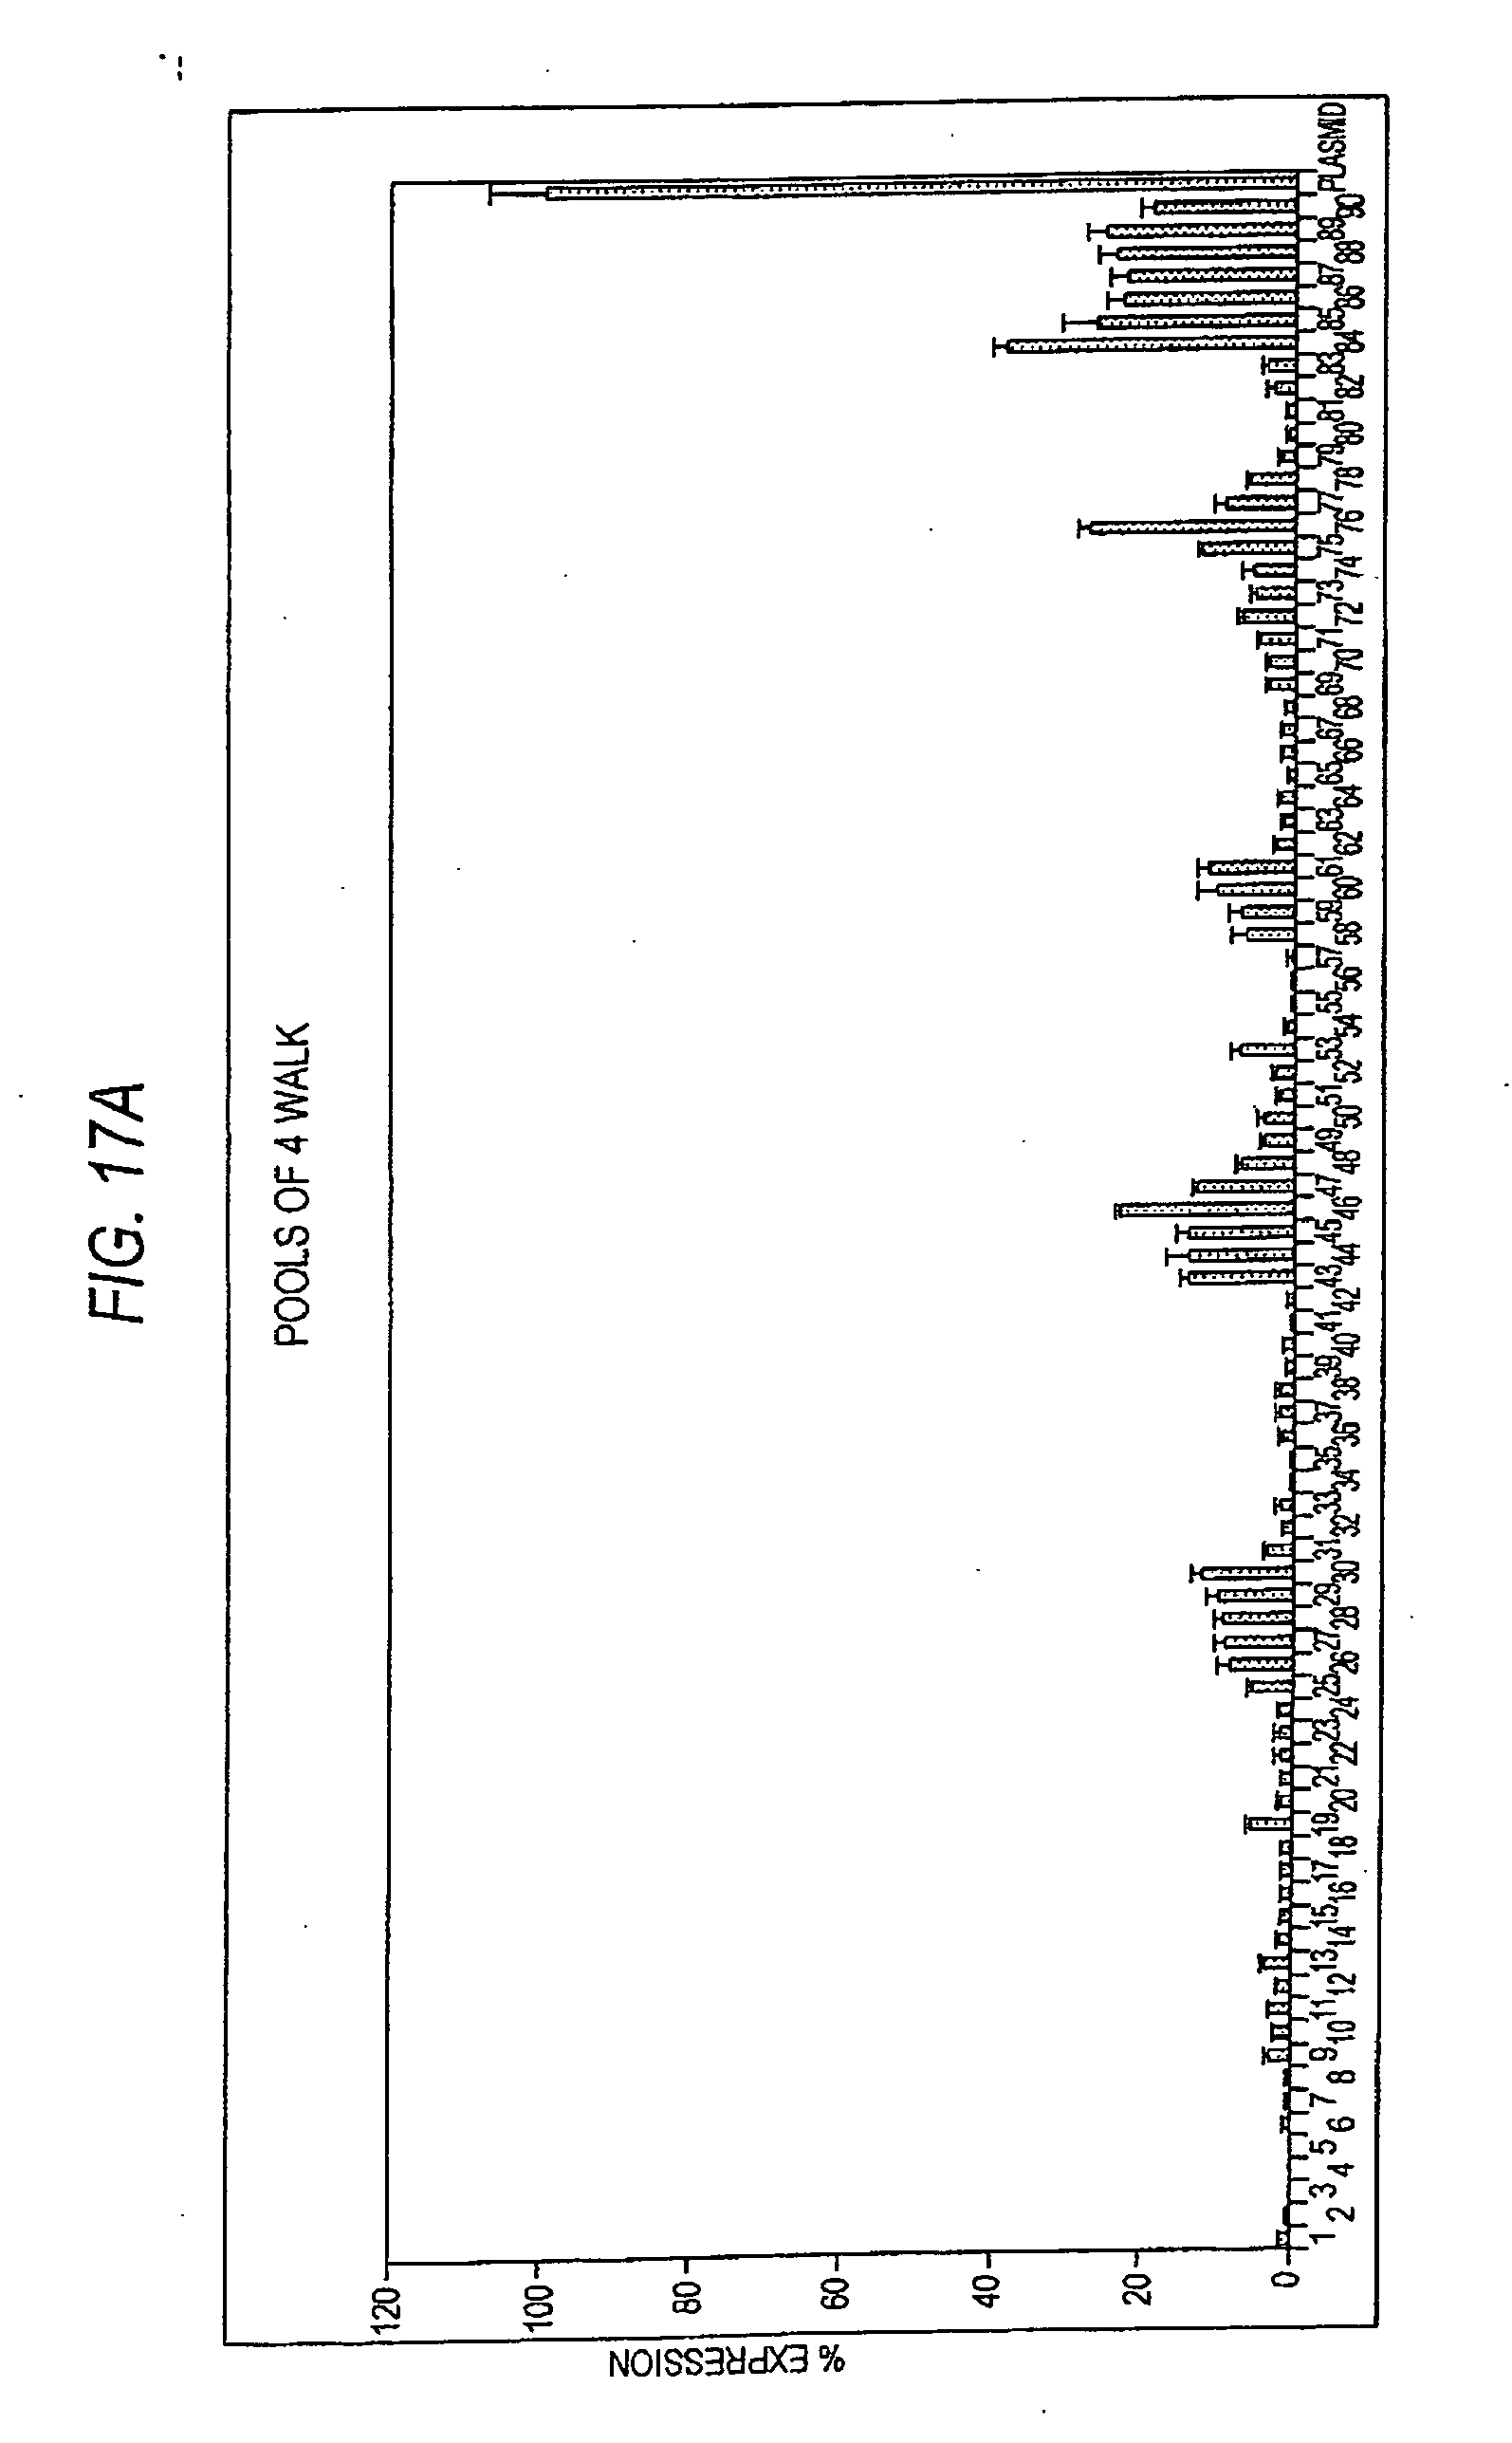 Fuctional and hyperfunctional sirna - Patent 2305812